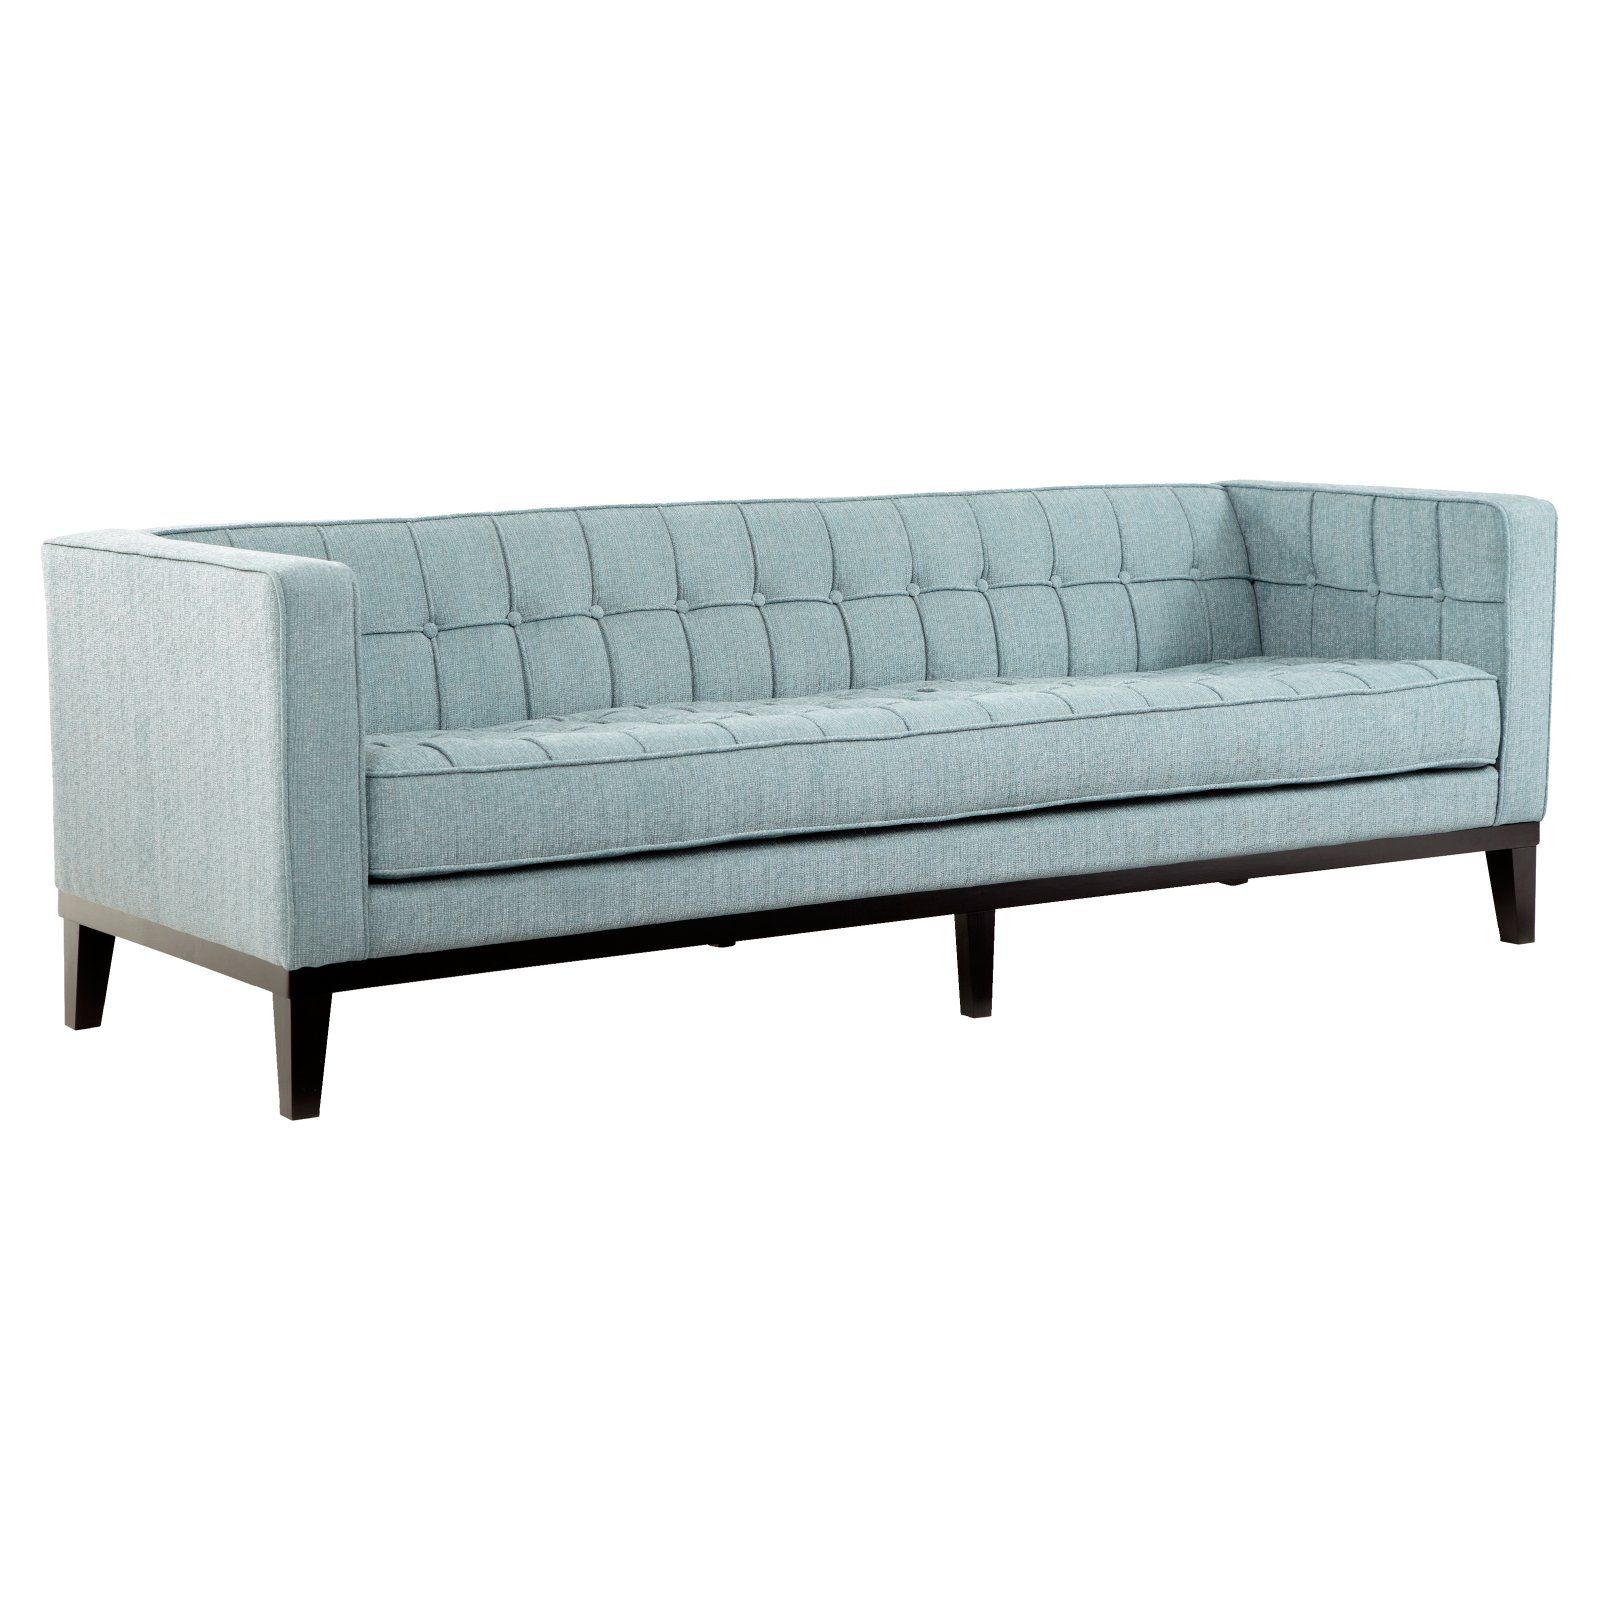 Armen Living Roxbury Sofa Spa Blue in 2019 Sofa, Tufted